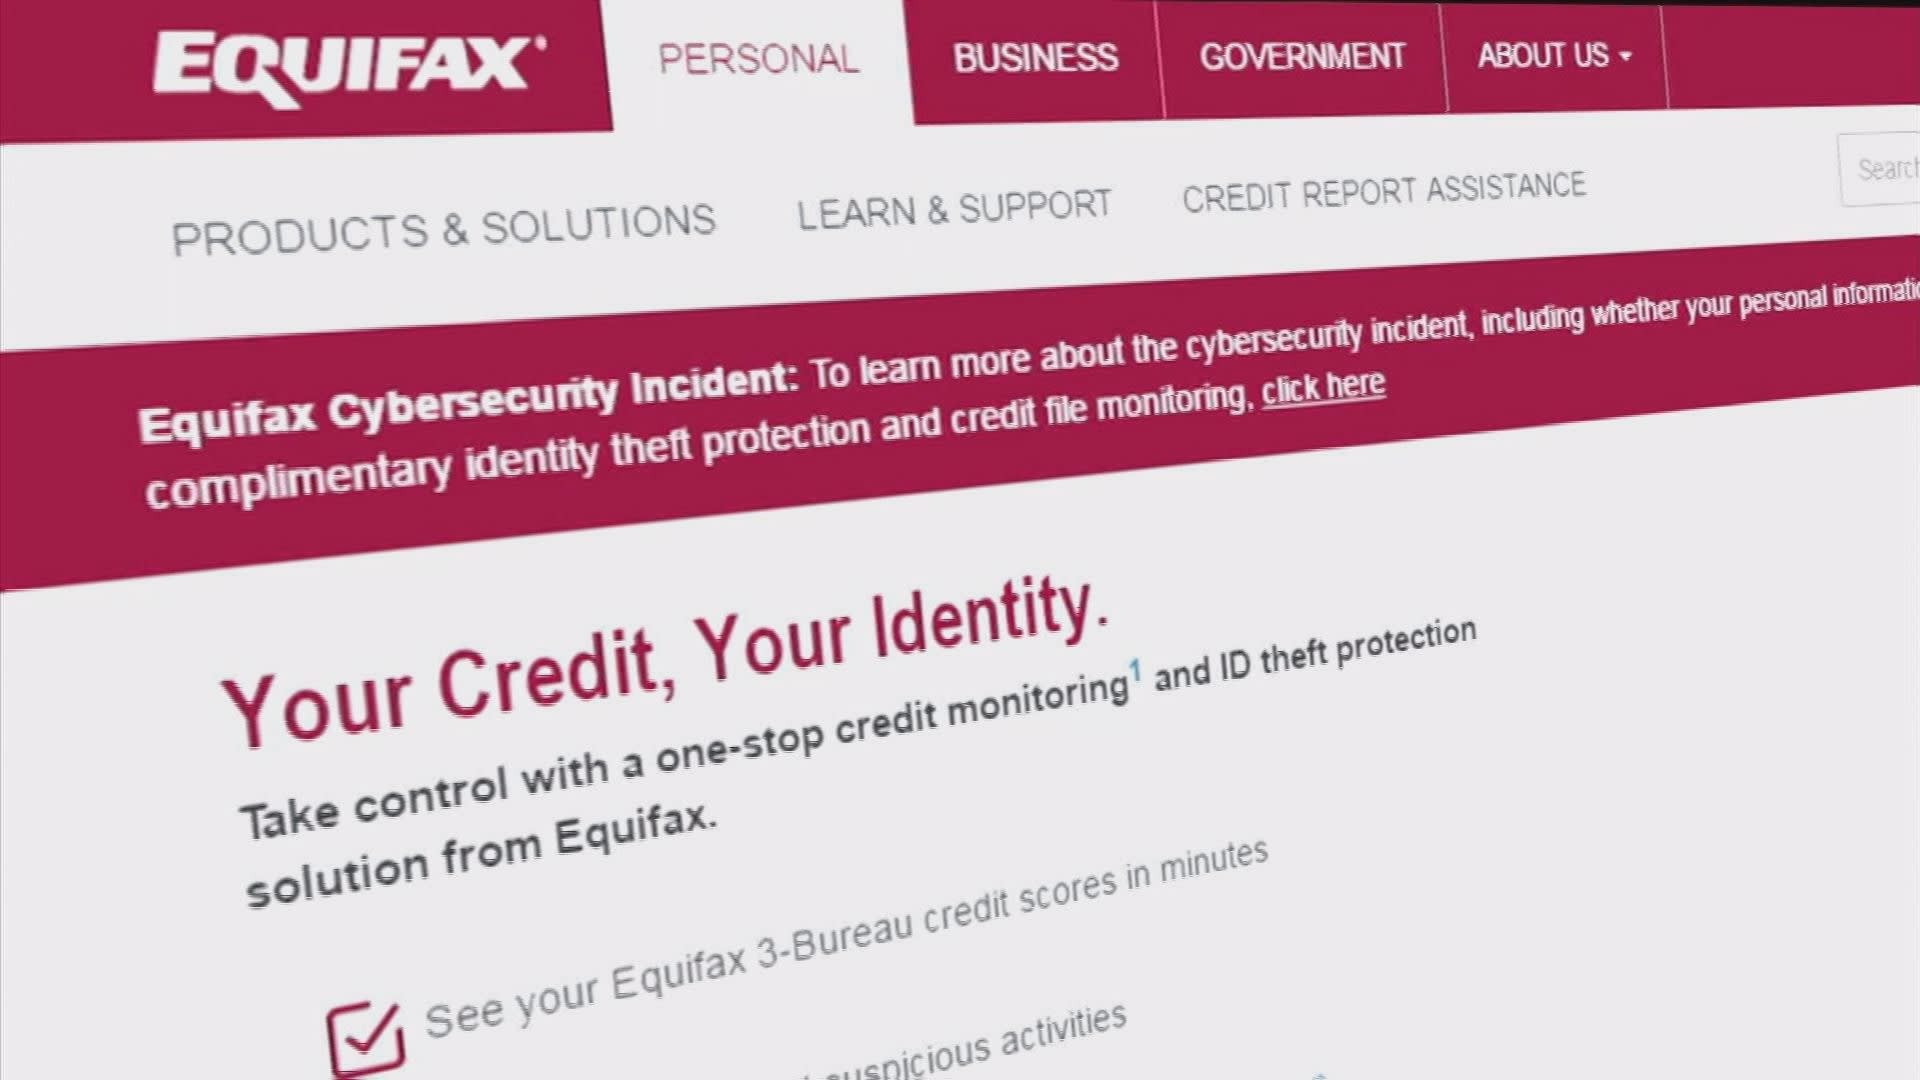 Equifax Credit Monitoring features